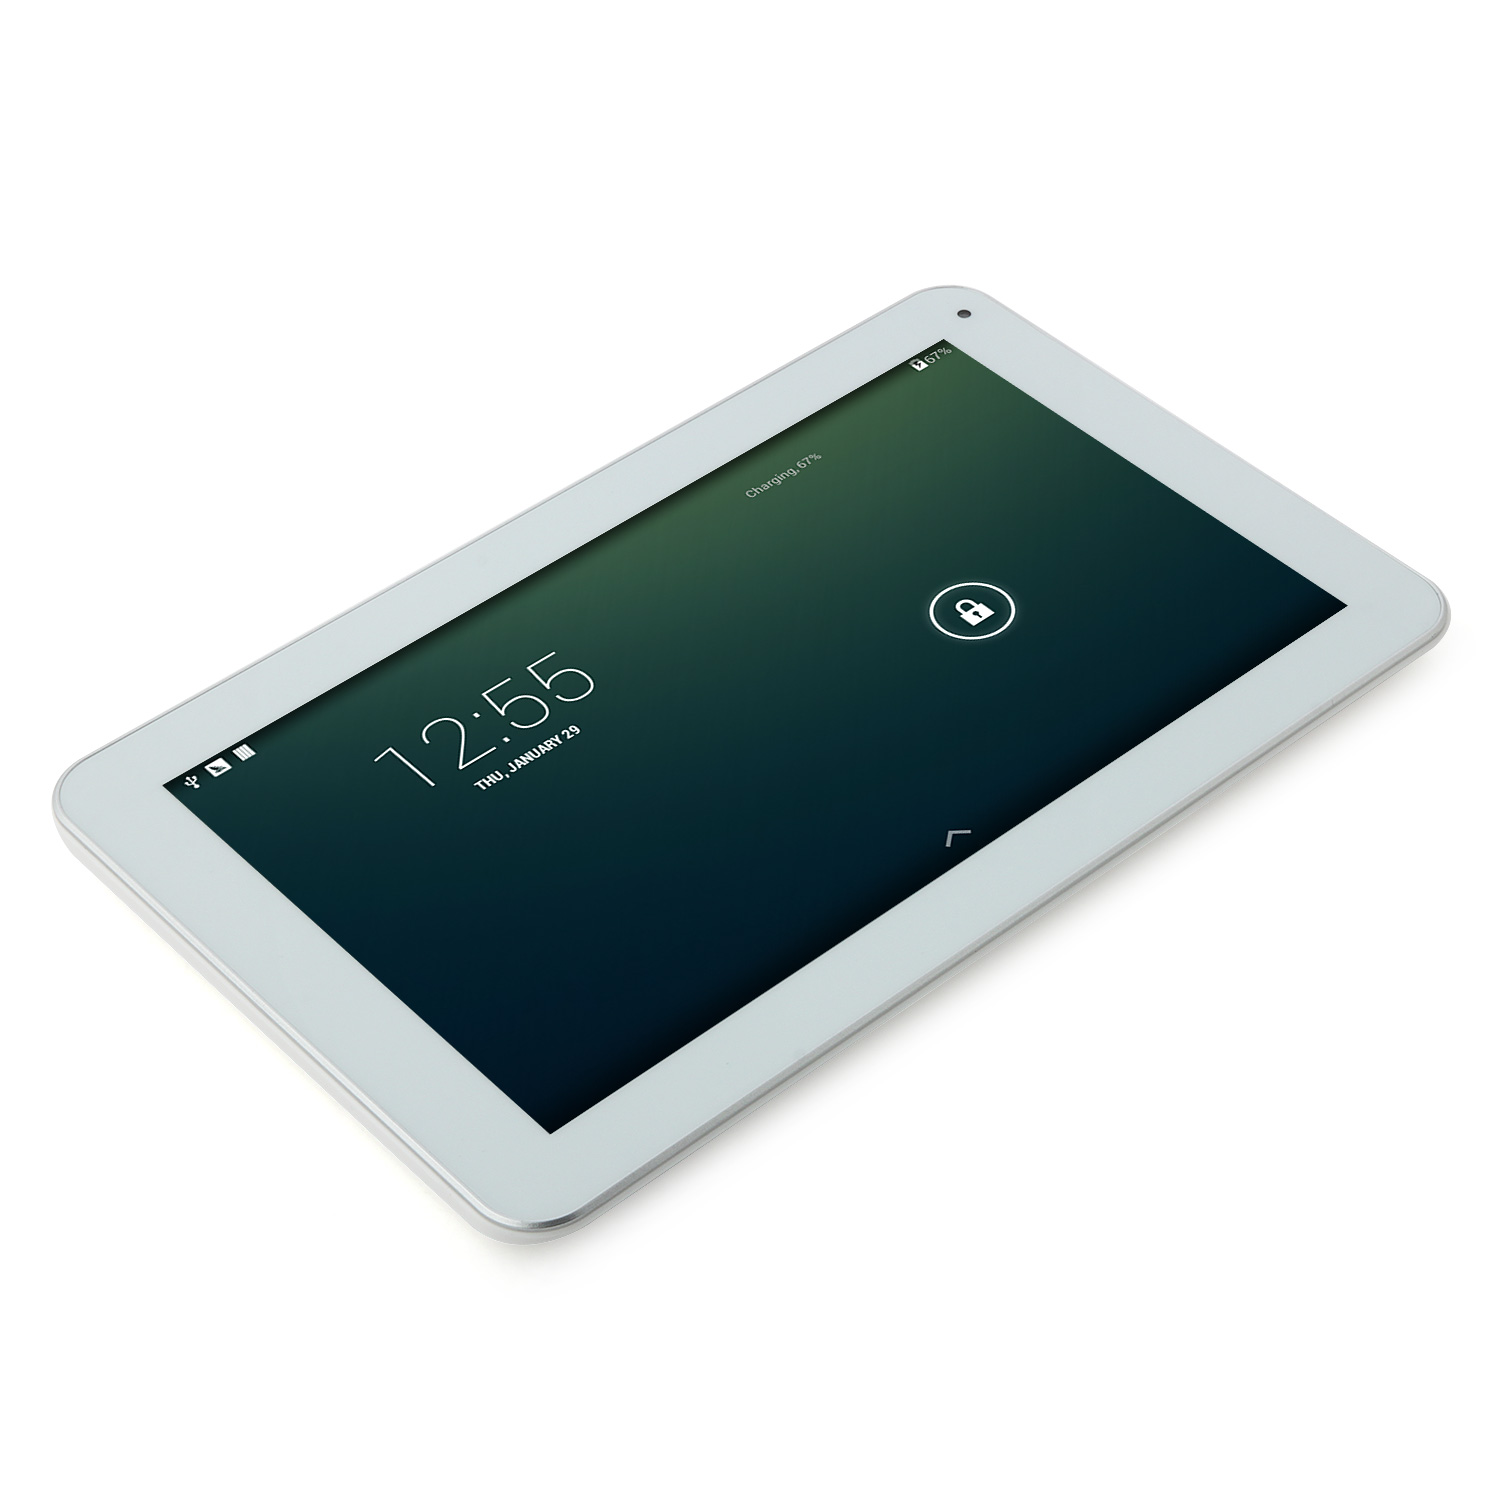 Soulycin S10 Tablet PC AllWinner A33 Quad Core 9.0 Inch Android 4.4 8GB White